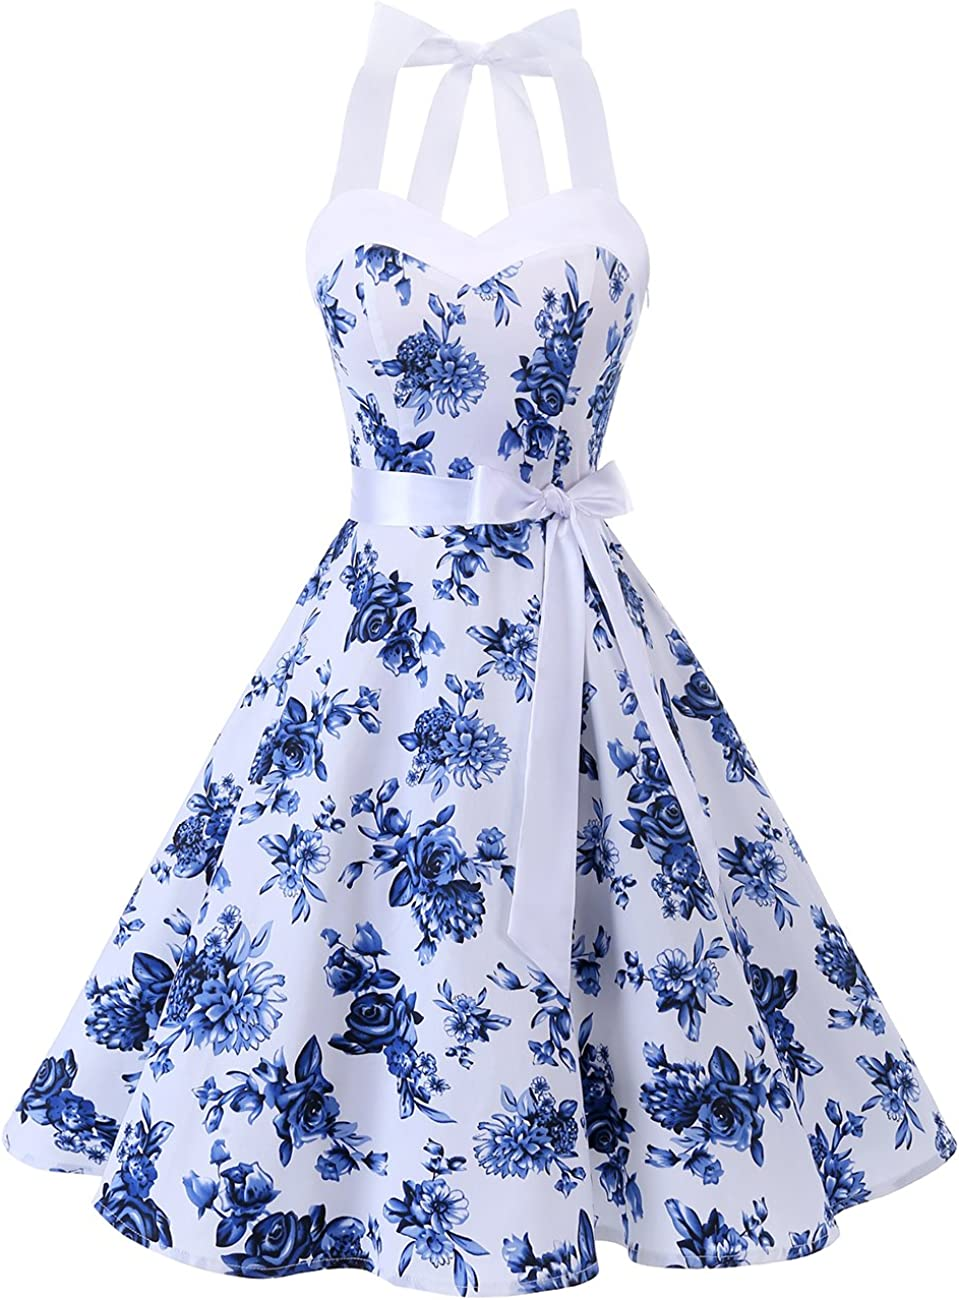 TALLA S. DRESSTELLS® Halter 50s Rockabilly Polka Dots Audrey Dress Retro Cocktail Dress White Blue Flower